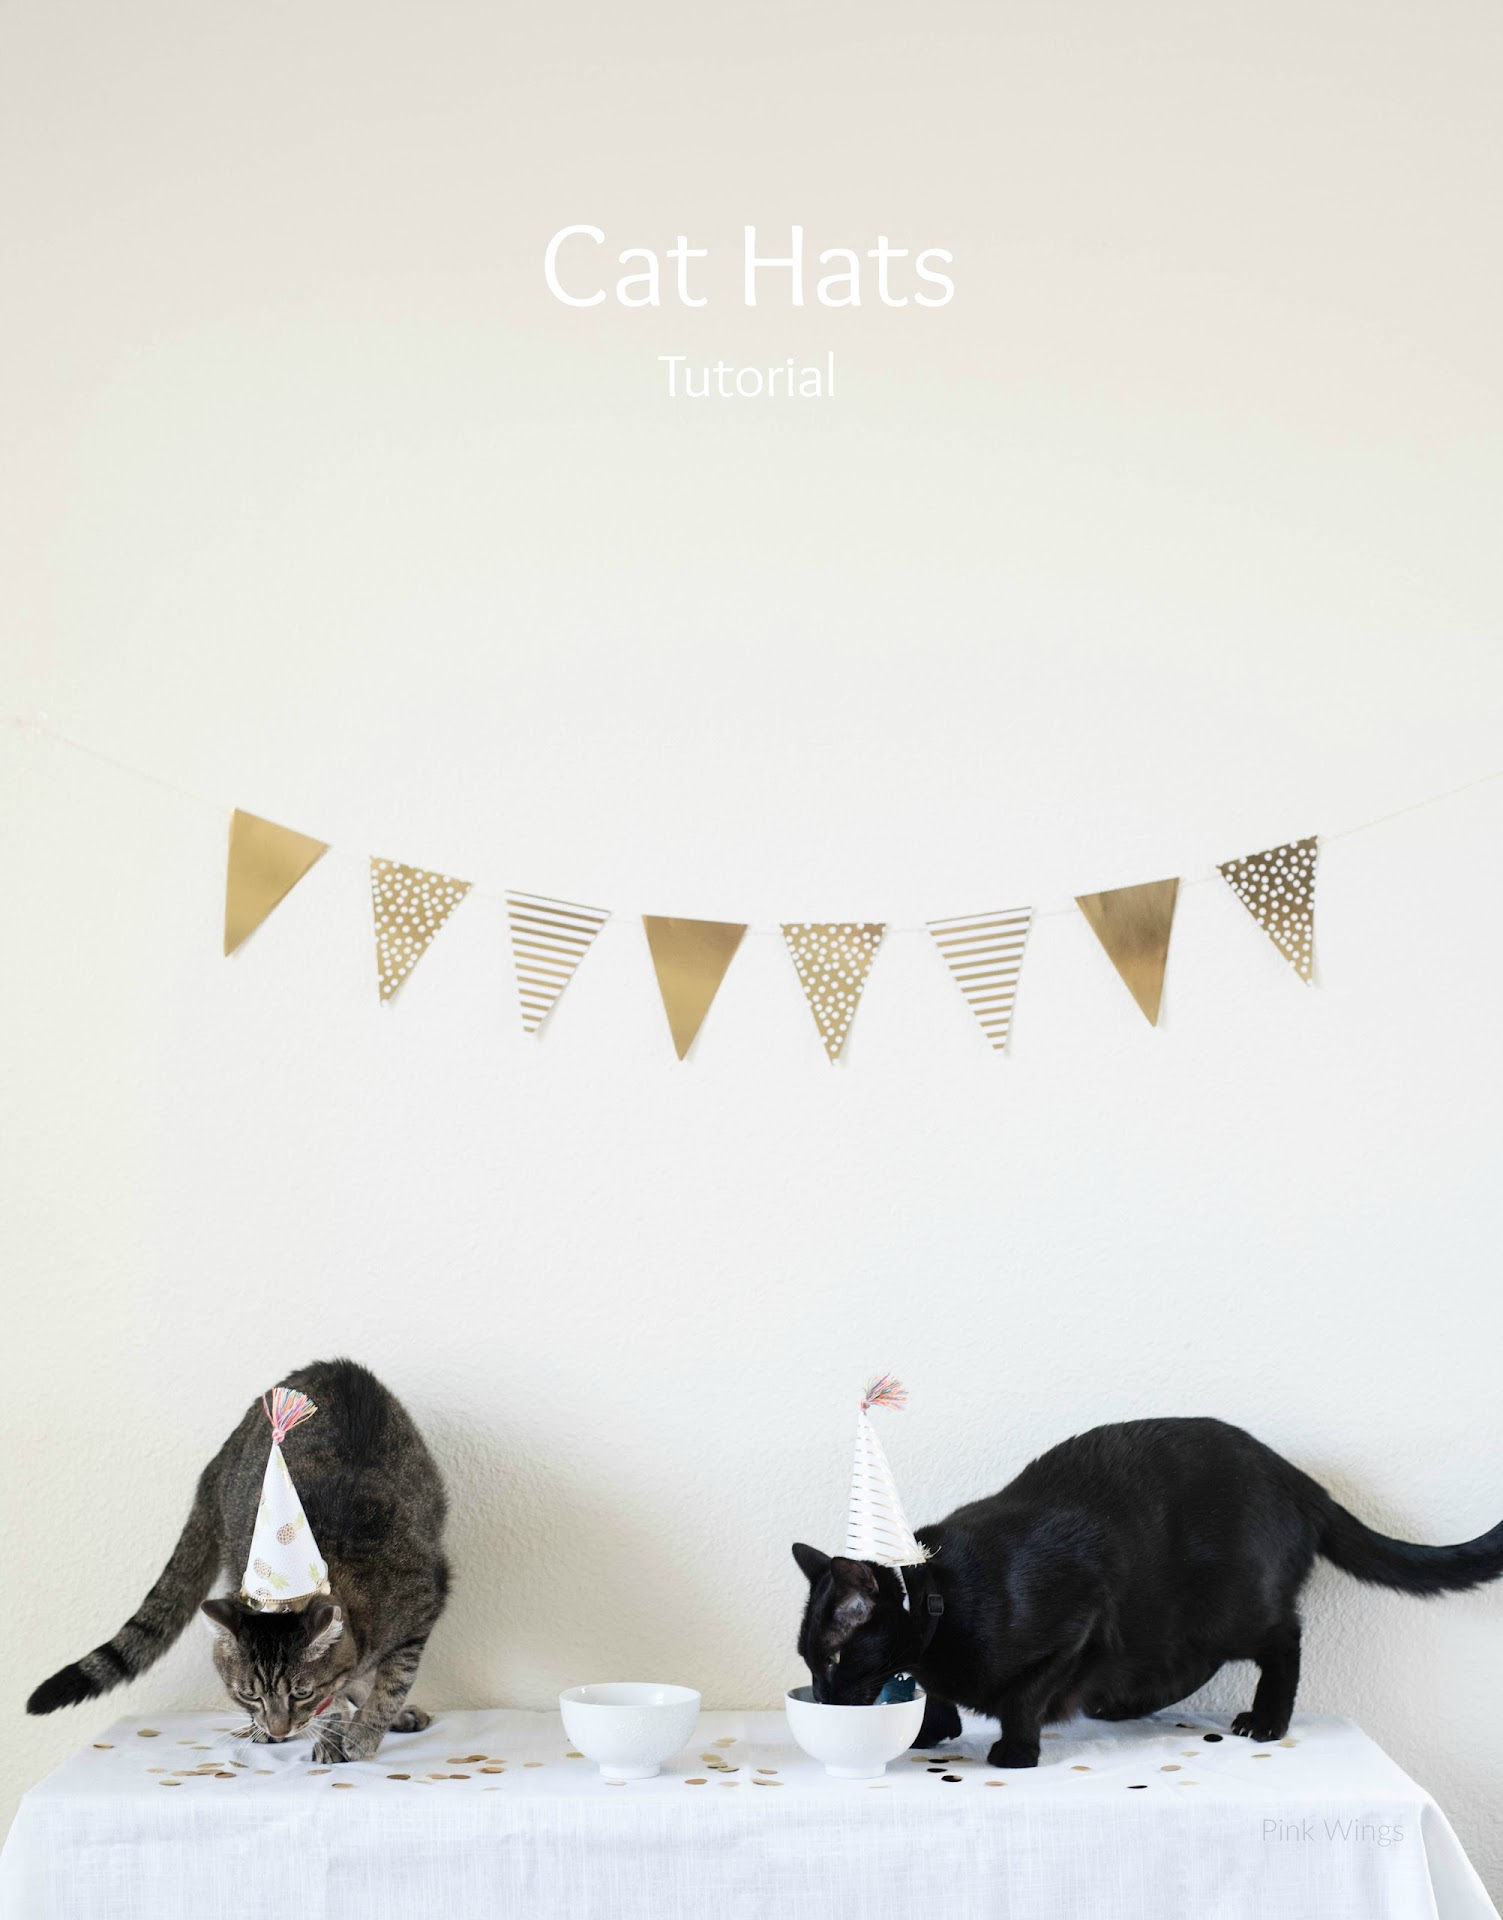 how to make cat hats, mini hats, clothing for cats, diy birthday hats, birthday cat party ideas, cat lady blog